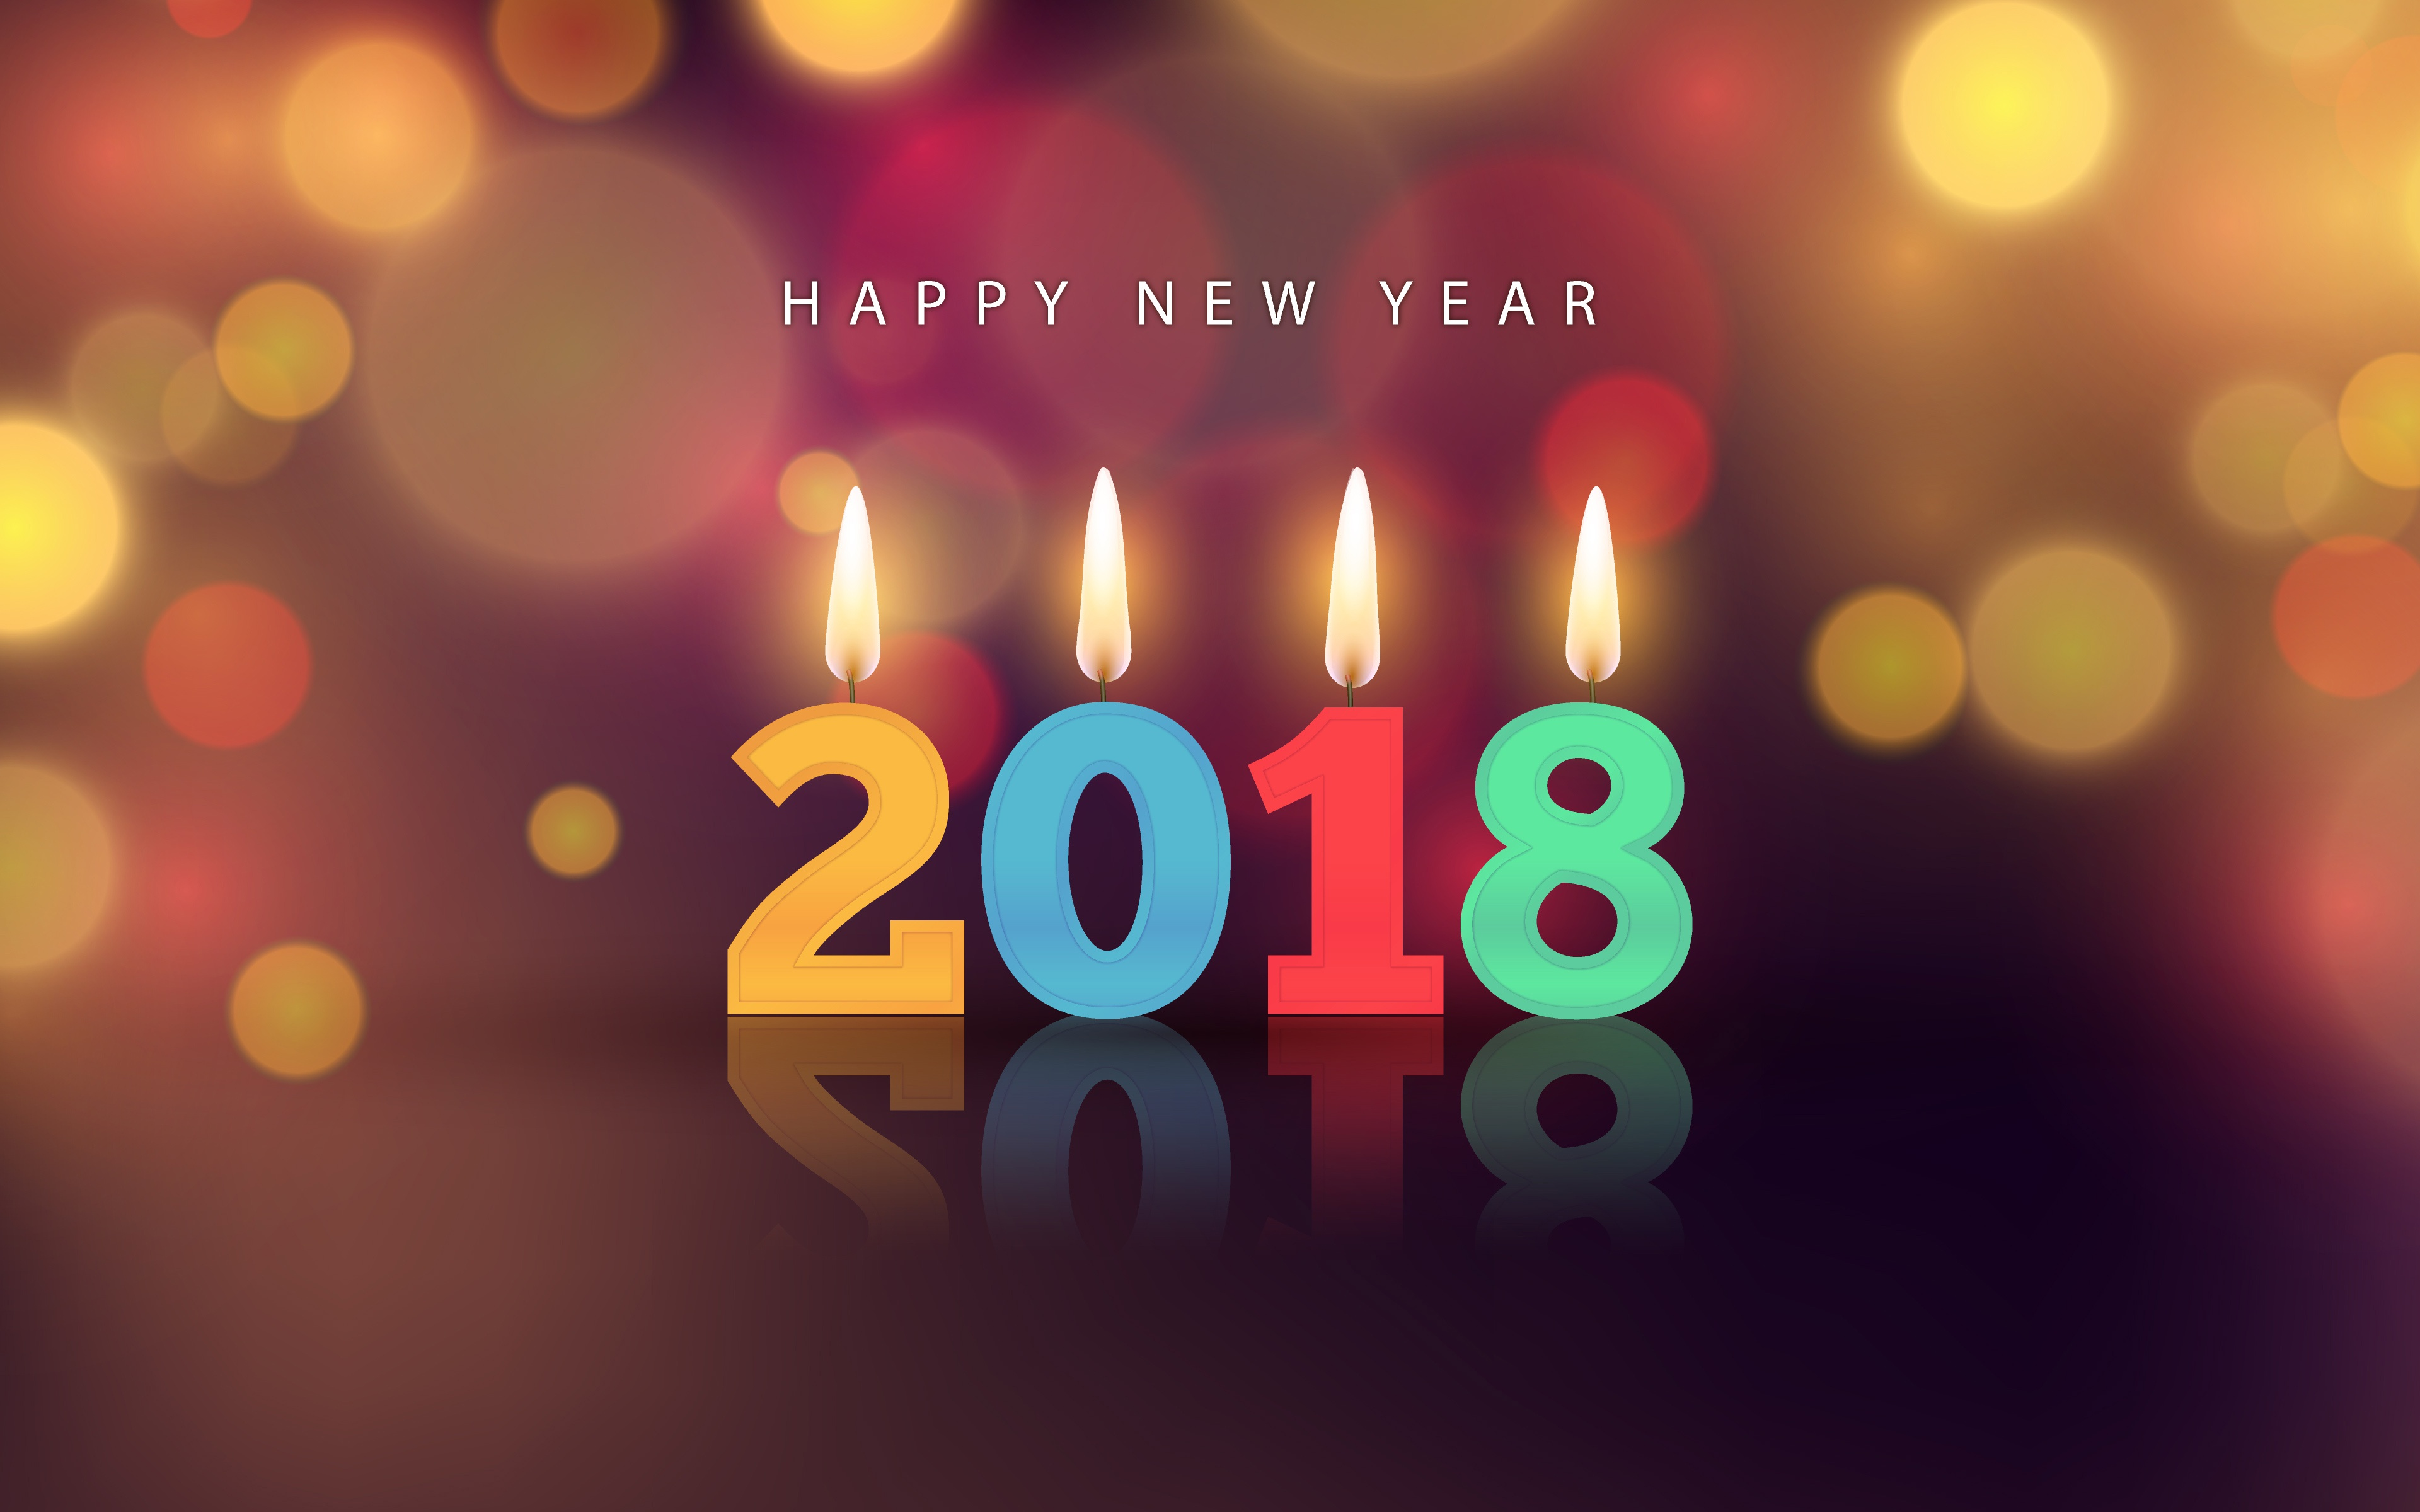 gift new year 2018 hd wallpaper background image id888173